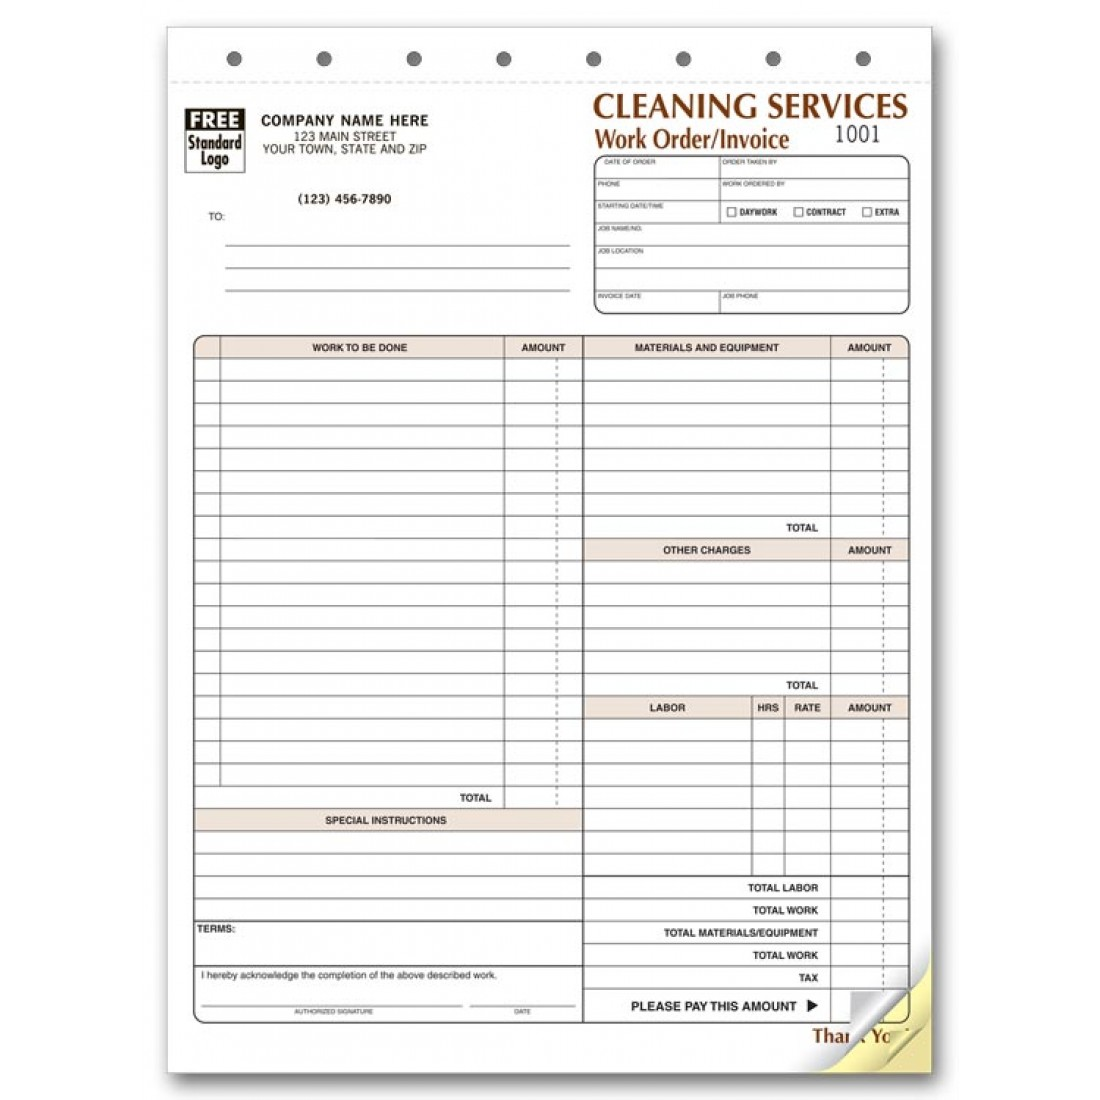 Cleaning Service Invoice Forms Free Shipping - Cleaning service invoice template